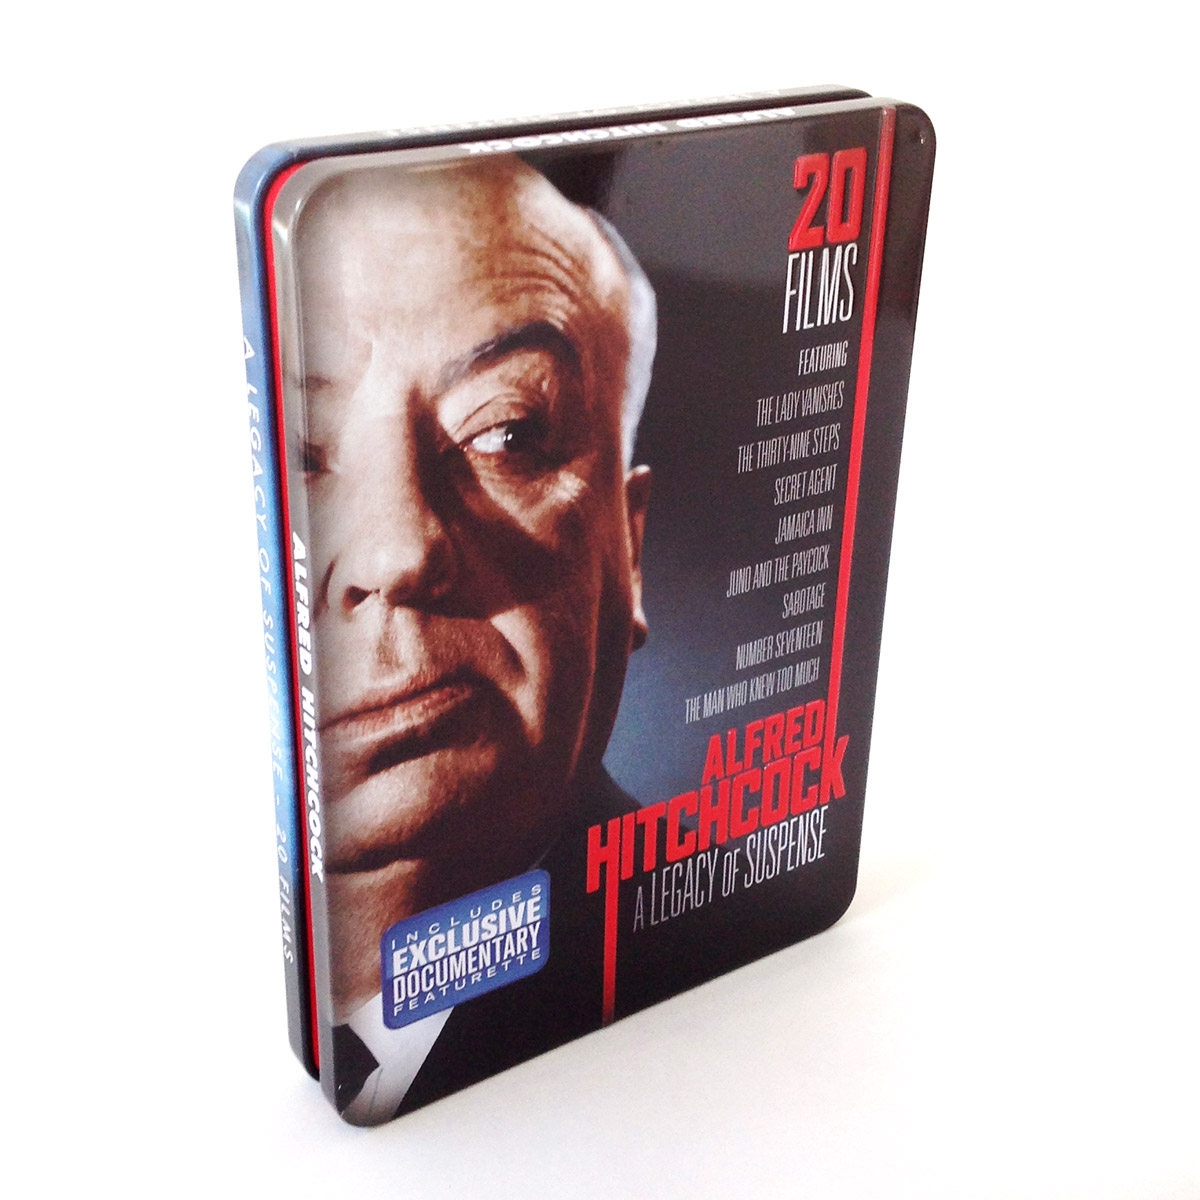 Hitchcock Tin - DVD Replication by OMM